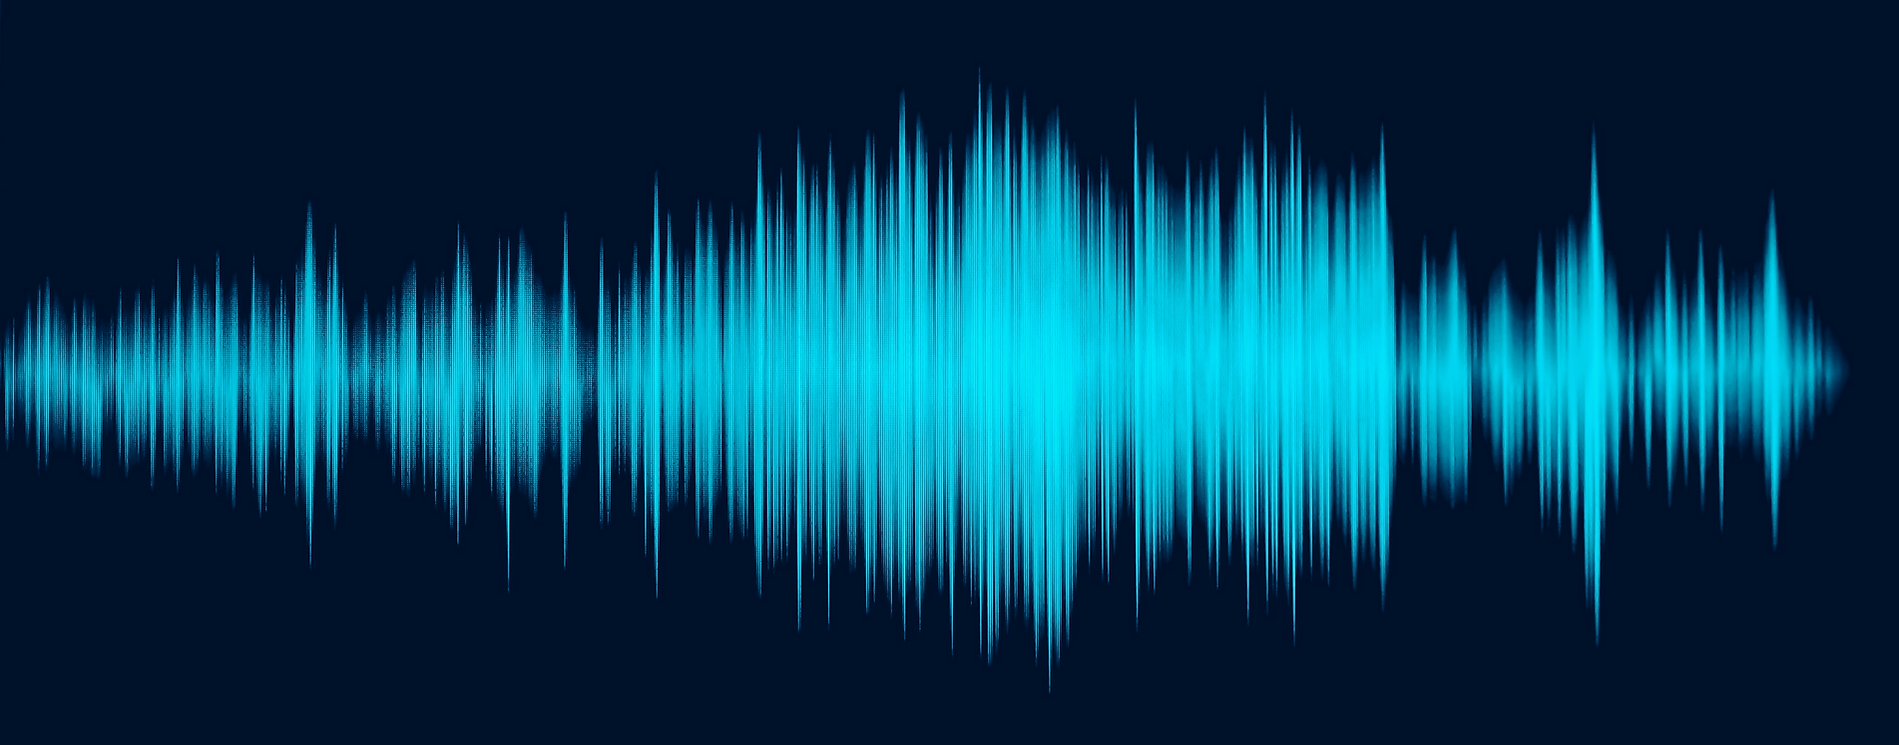 SOUND WAVE FINAL BLUE.png